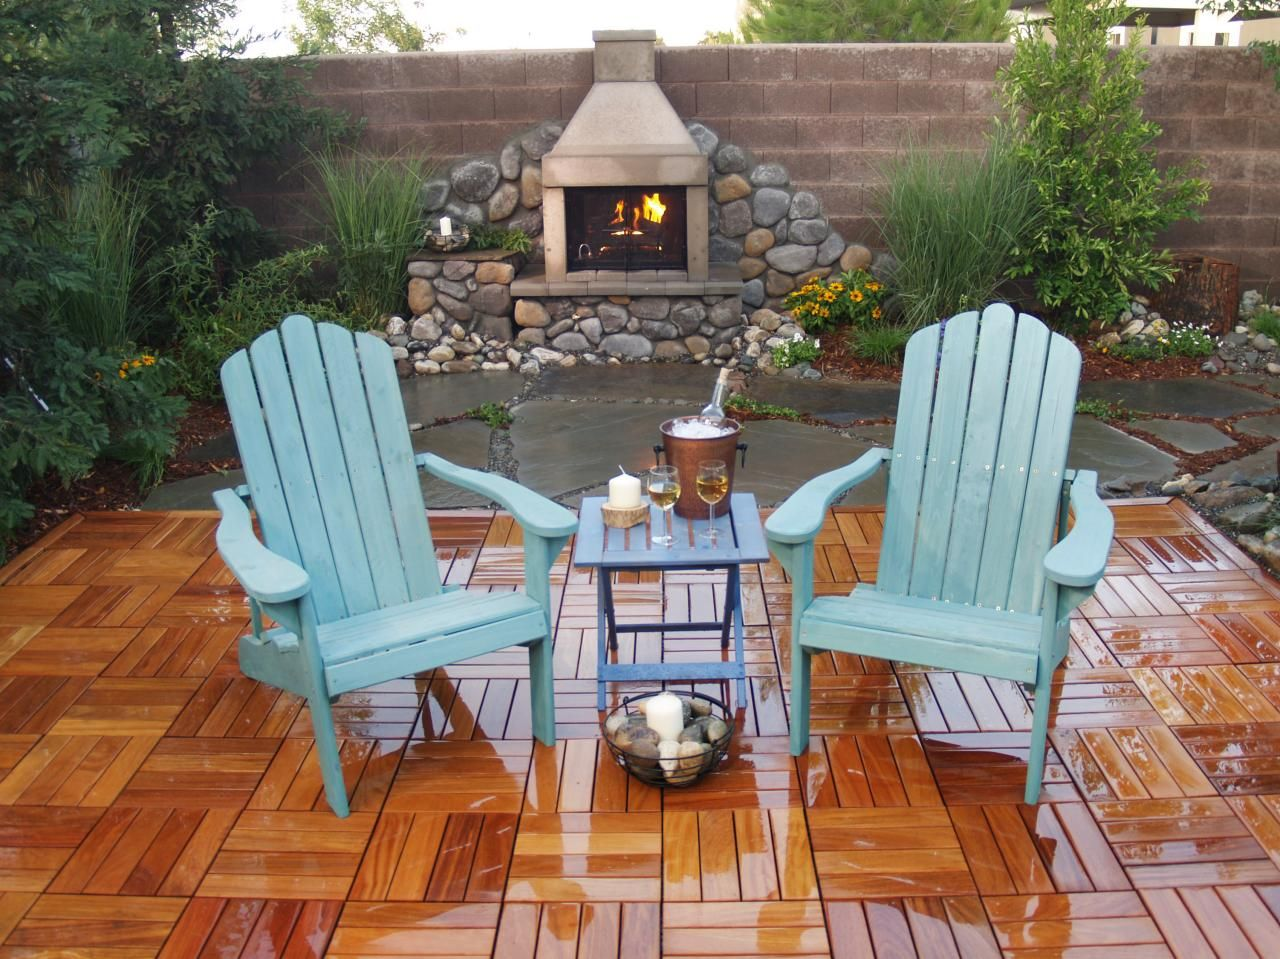 Outdoor Fireplaces and Fire Pits | Yard crashers, Outdoor structures ...